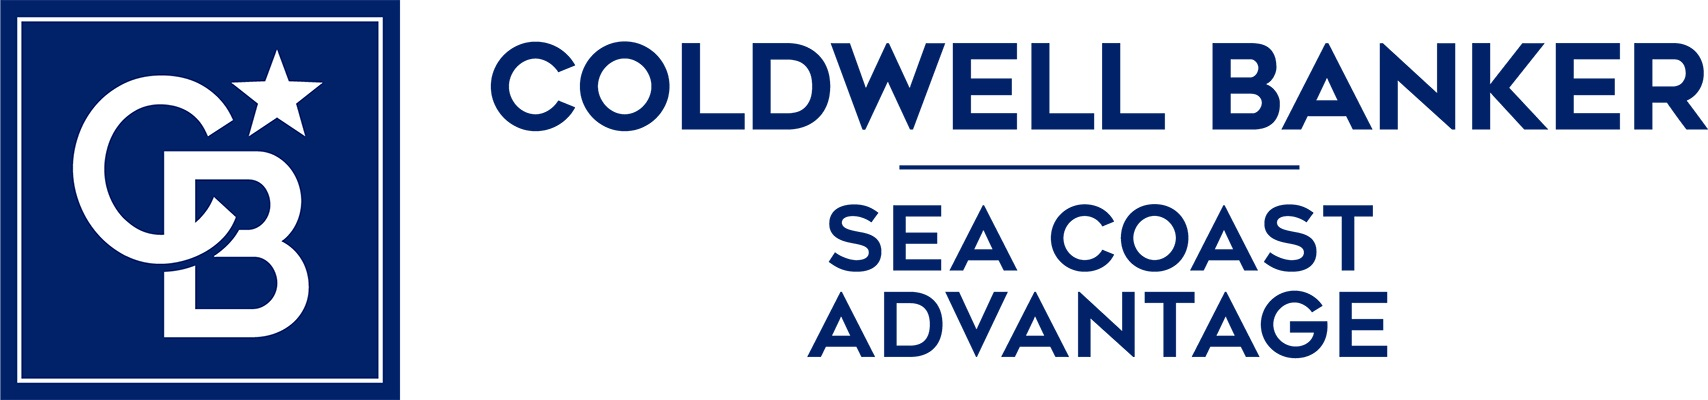 Justin Ash - Coldwell Banker Sea Coast Advantage Realty